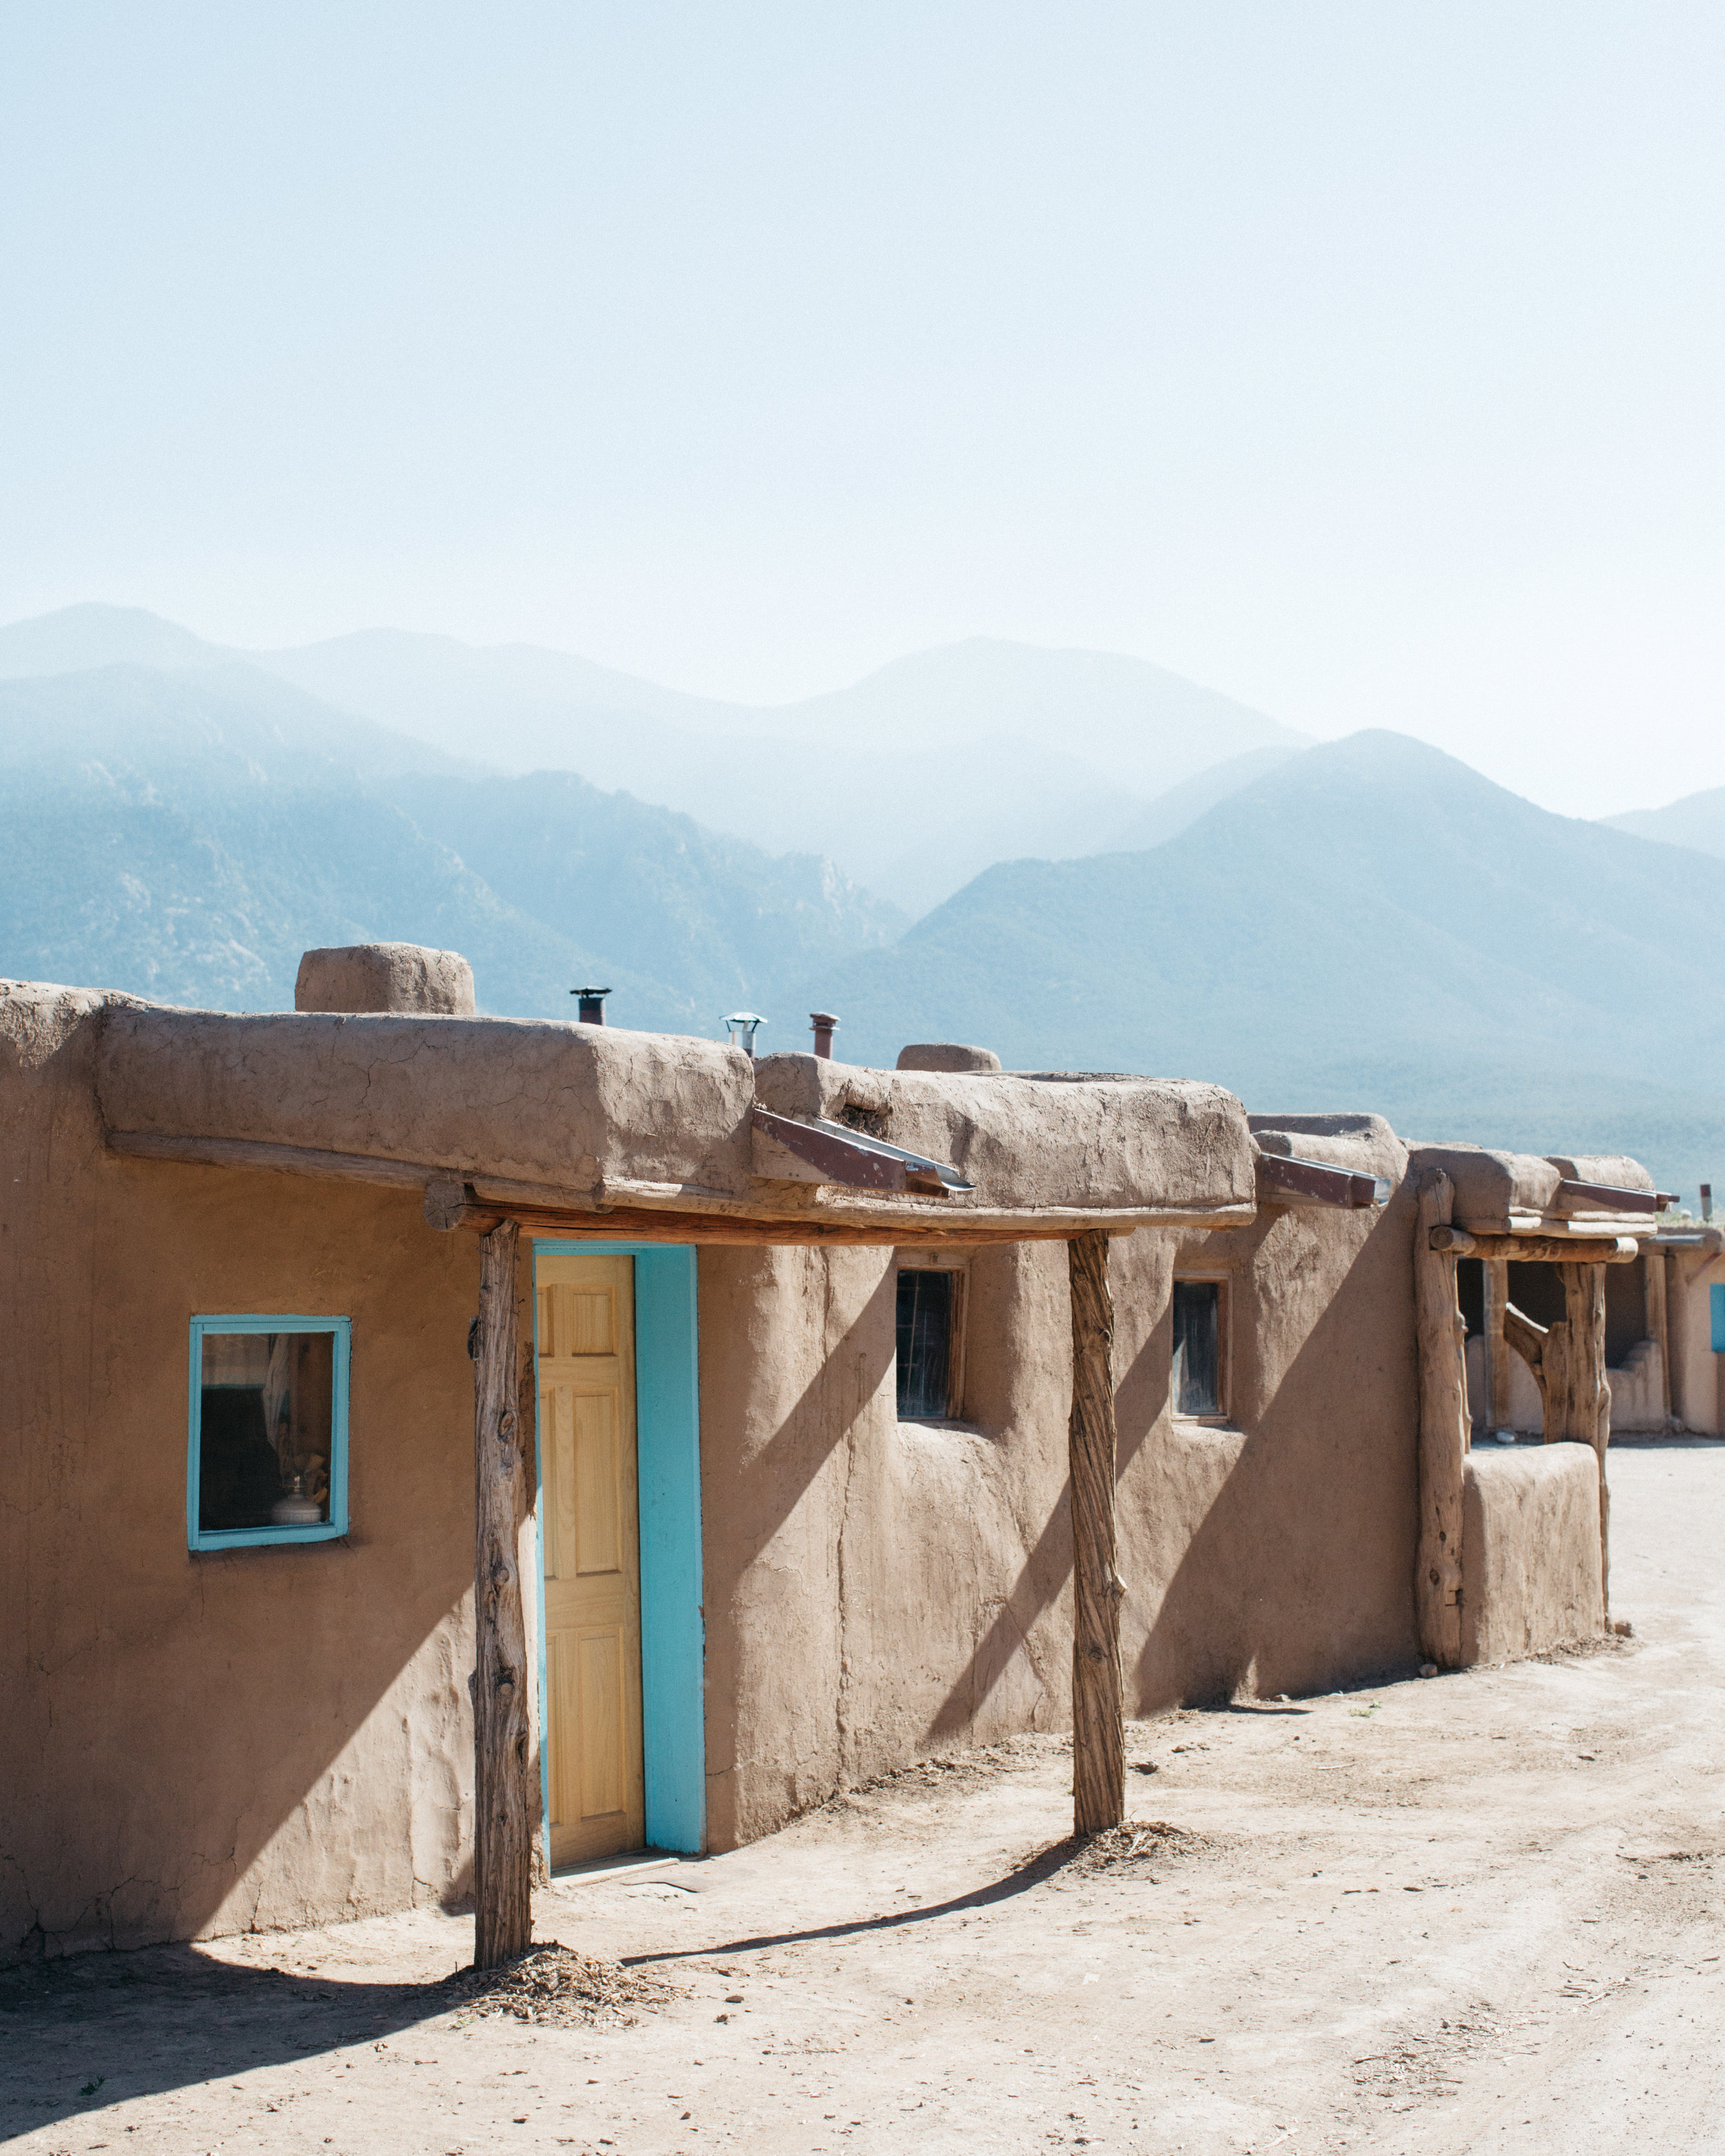 TAOS, NMstayAirbnb: Sister Casita. i adored staying here. it was conveniently located and cozy.drinkTaos Mesa Brewing. perfectly situated off a desert road surrounded by mountains, also a music venue.eatLove Apple. do not miss this one. a local, organic, farm to table restaurant. perhaps my favorite meal of the summer.Cid's Grocery. a local, organic grocery. we loved their pre-made section for hikes.see & doTaos Pueblo Community. such an incredible place, make sure to check the website for closure updates.Harwood Museum of ArtTaos Ski Valley. Hike to Williams Lake in warmer months.Rio Grande Gorge BridgeShree YogaGhost RanchCarsons National Forest -